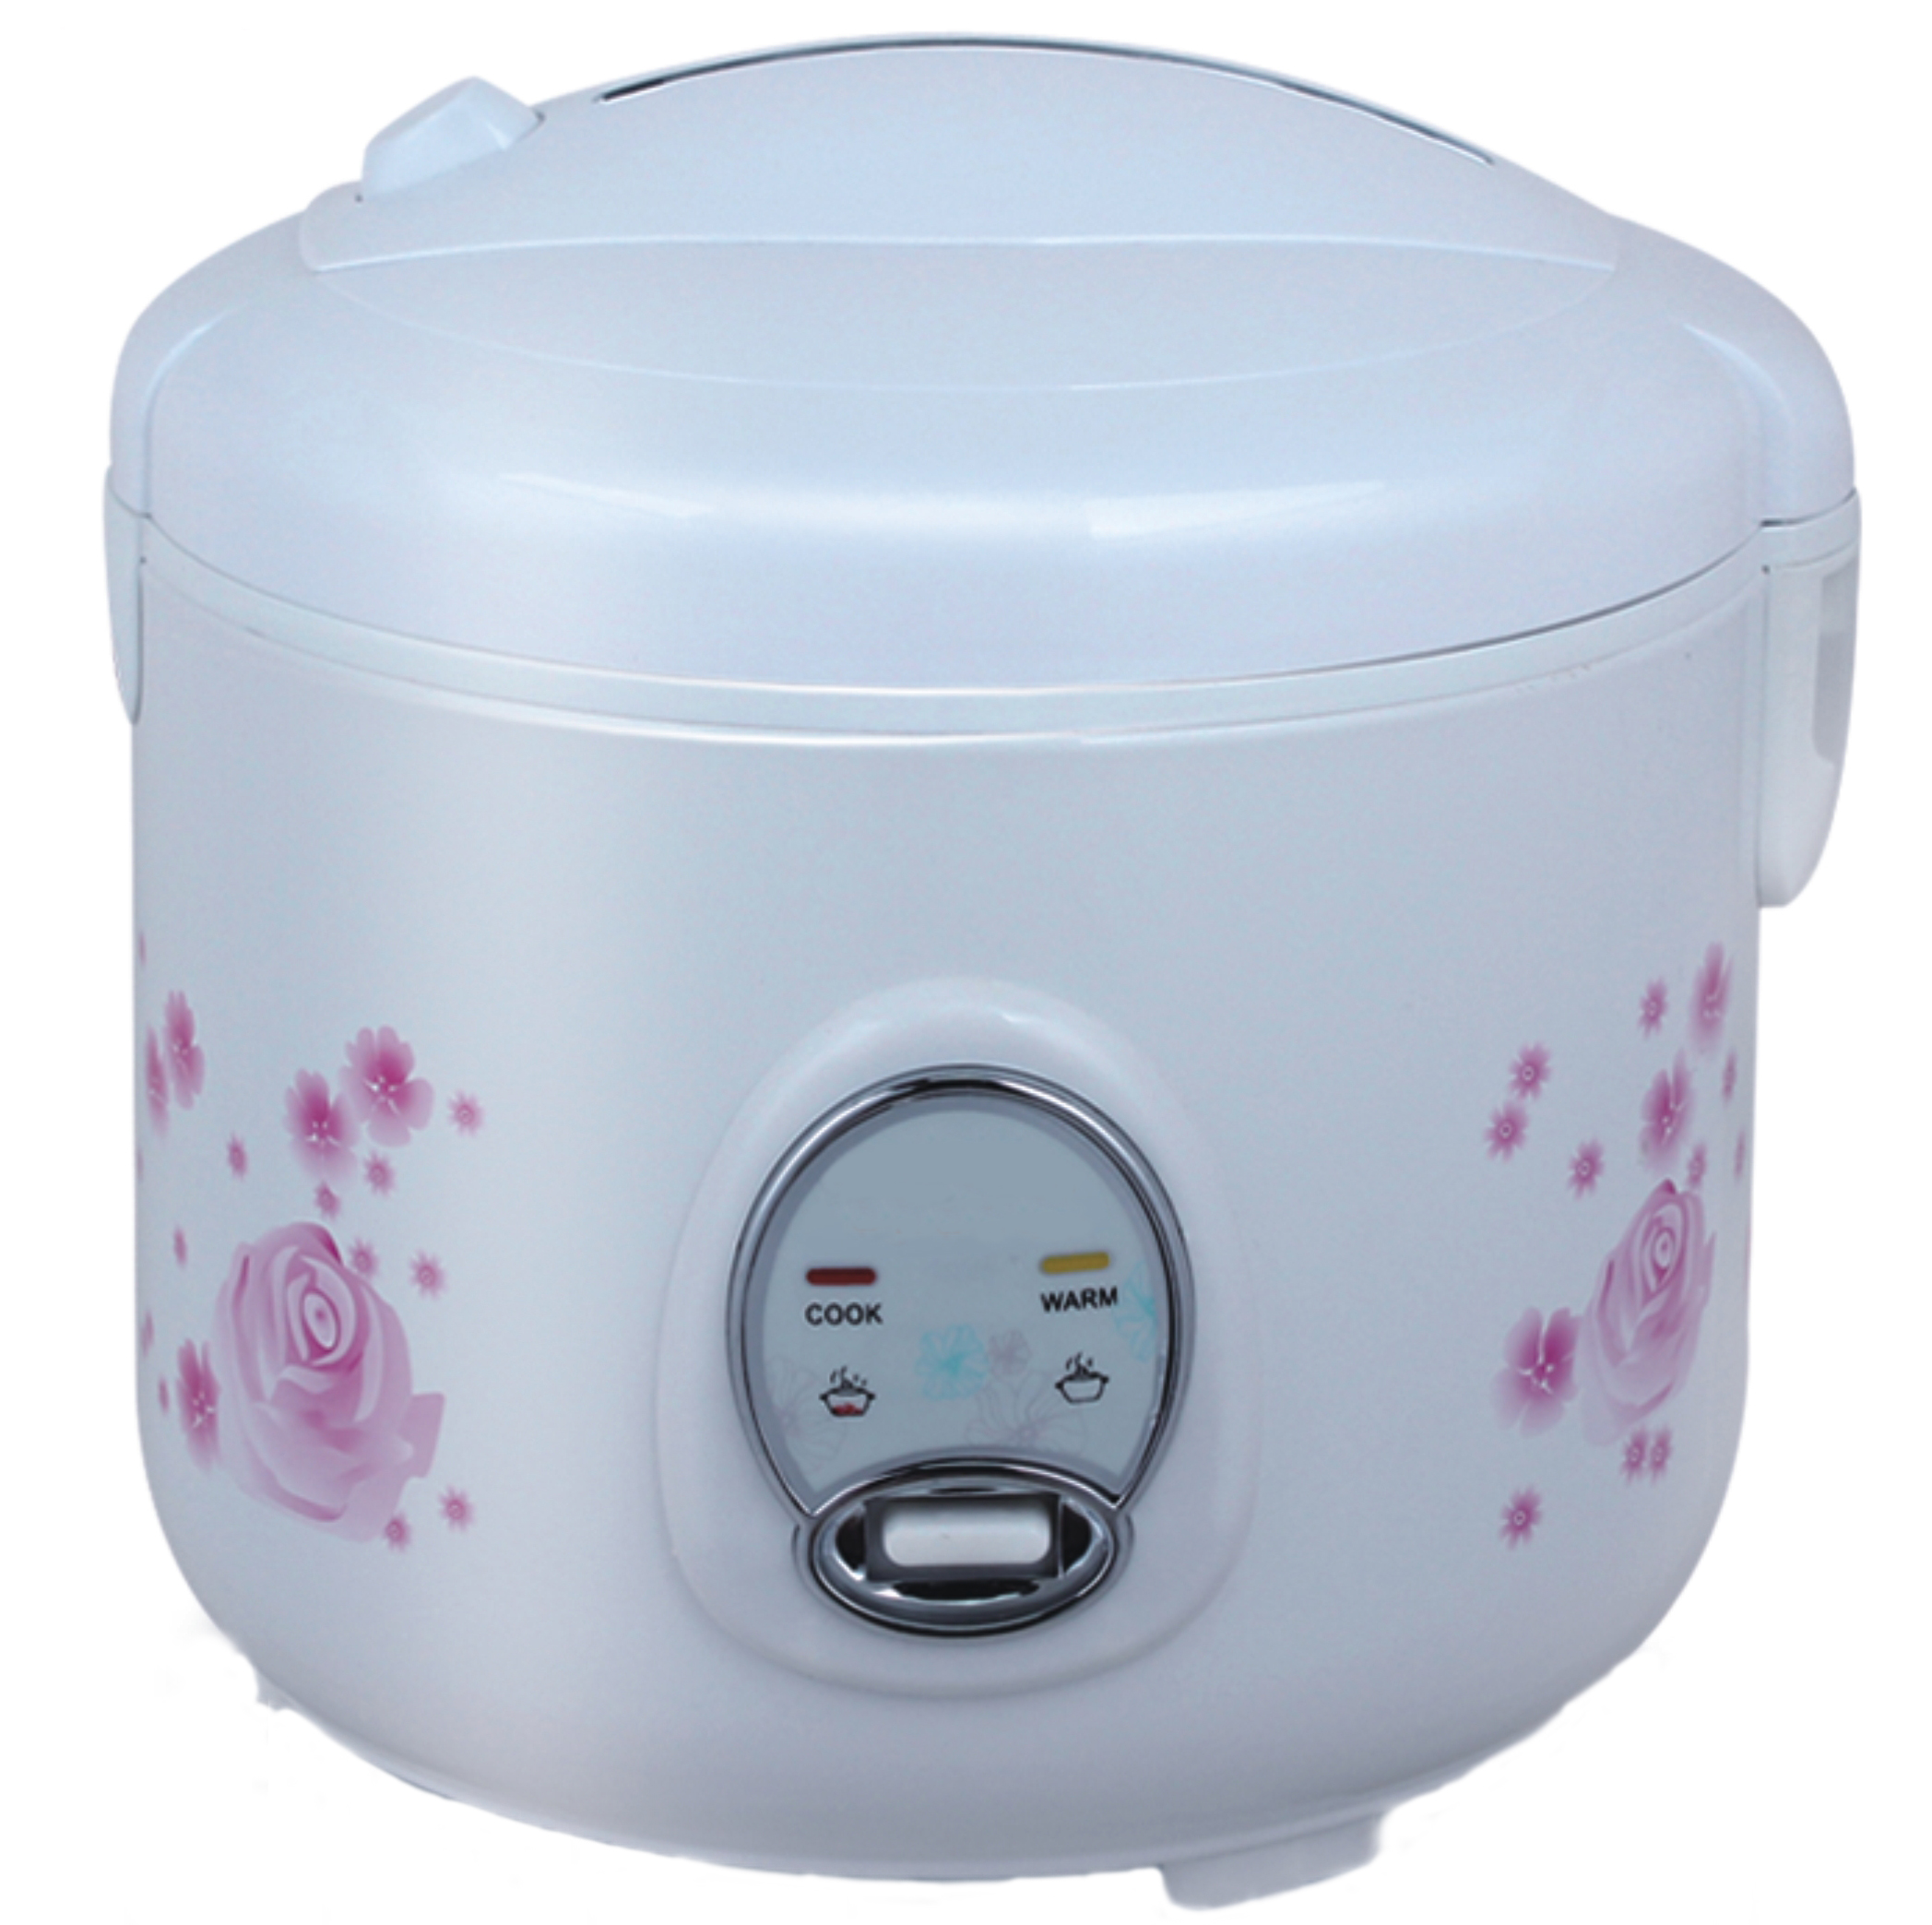 Whole body rice cooker   TPXB30-01